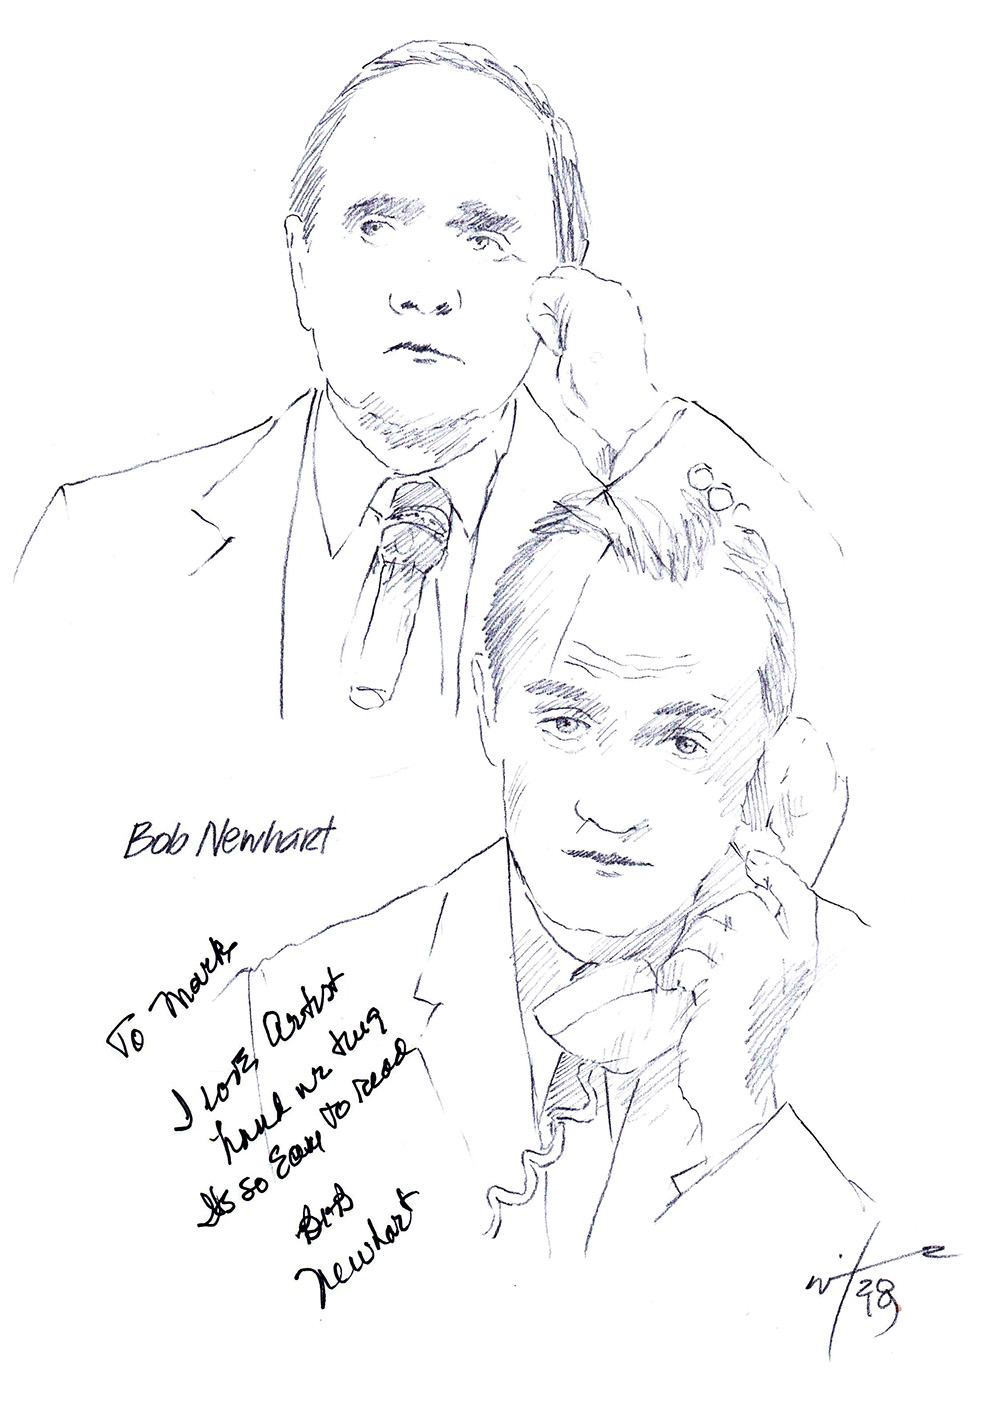 Autographed drawing of comedian Bob Newhart